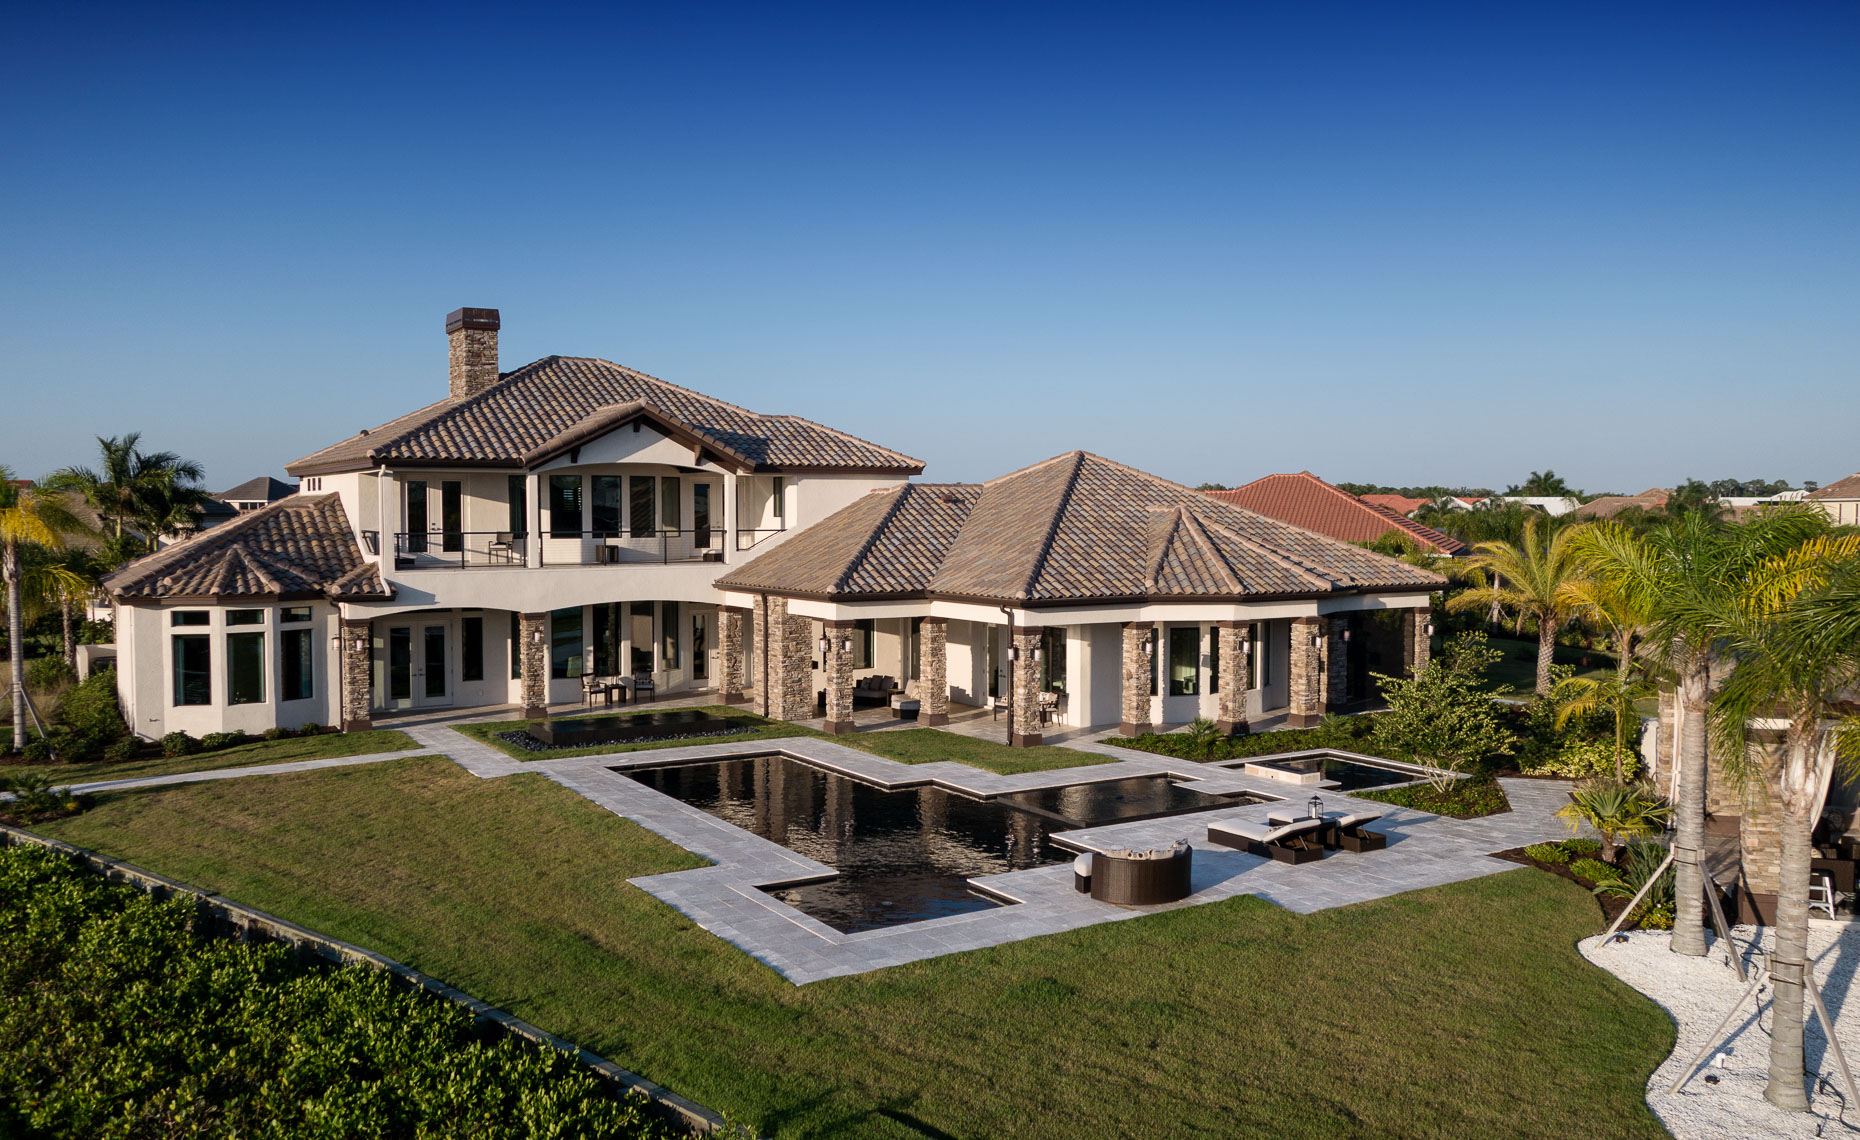 Aerial Custom Waterfront Home - Mark Borosch Photography - Bradenton, FL